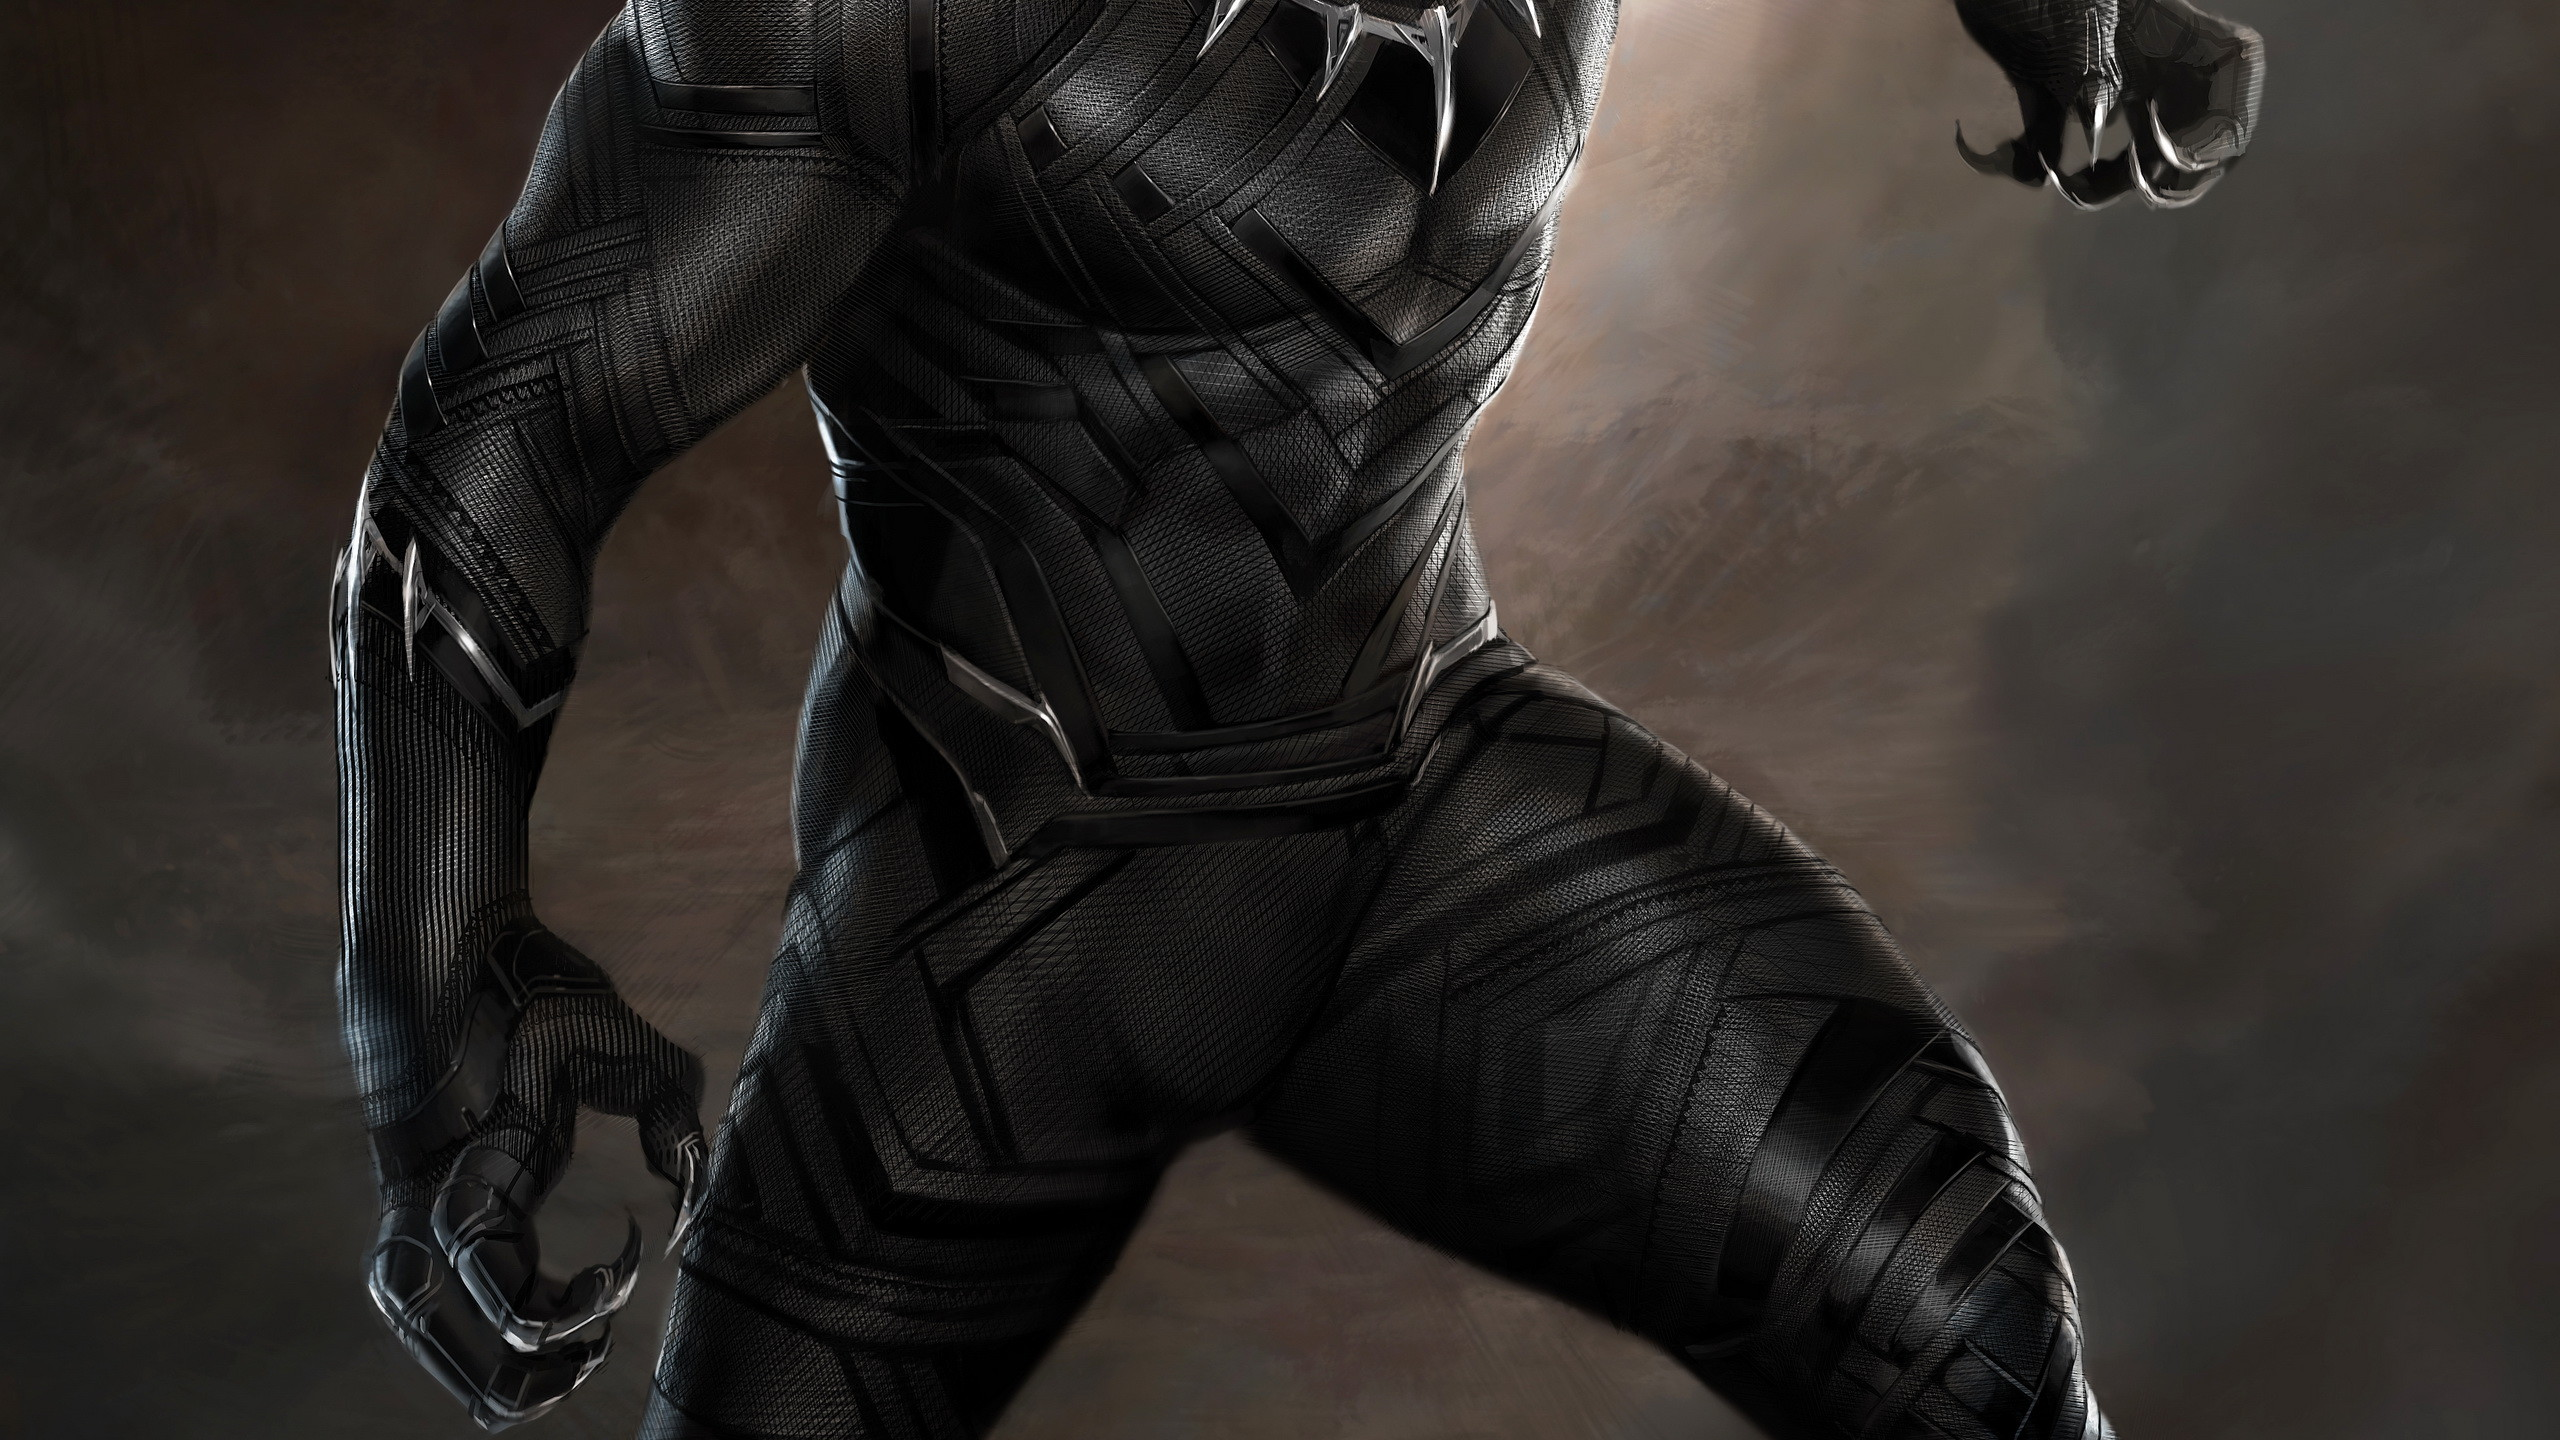 Black Panther Marvel Wallpapers Wallpapersafari